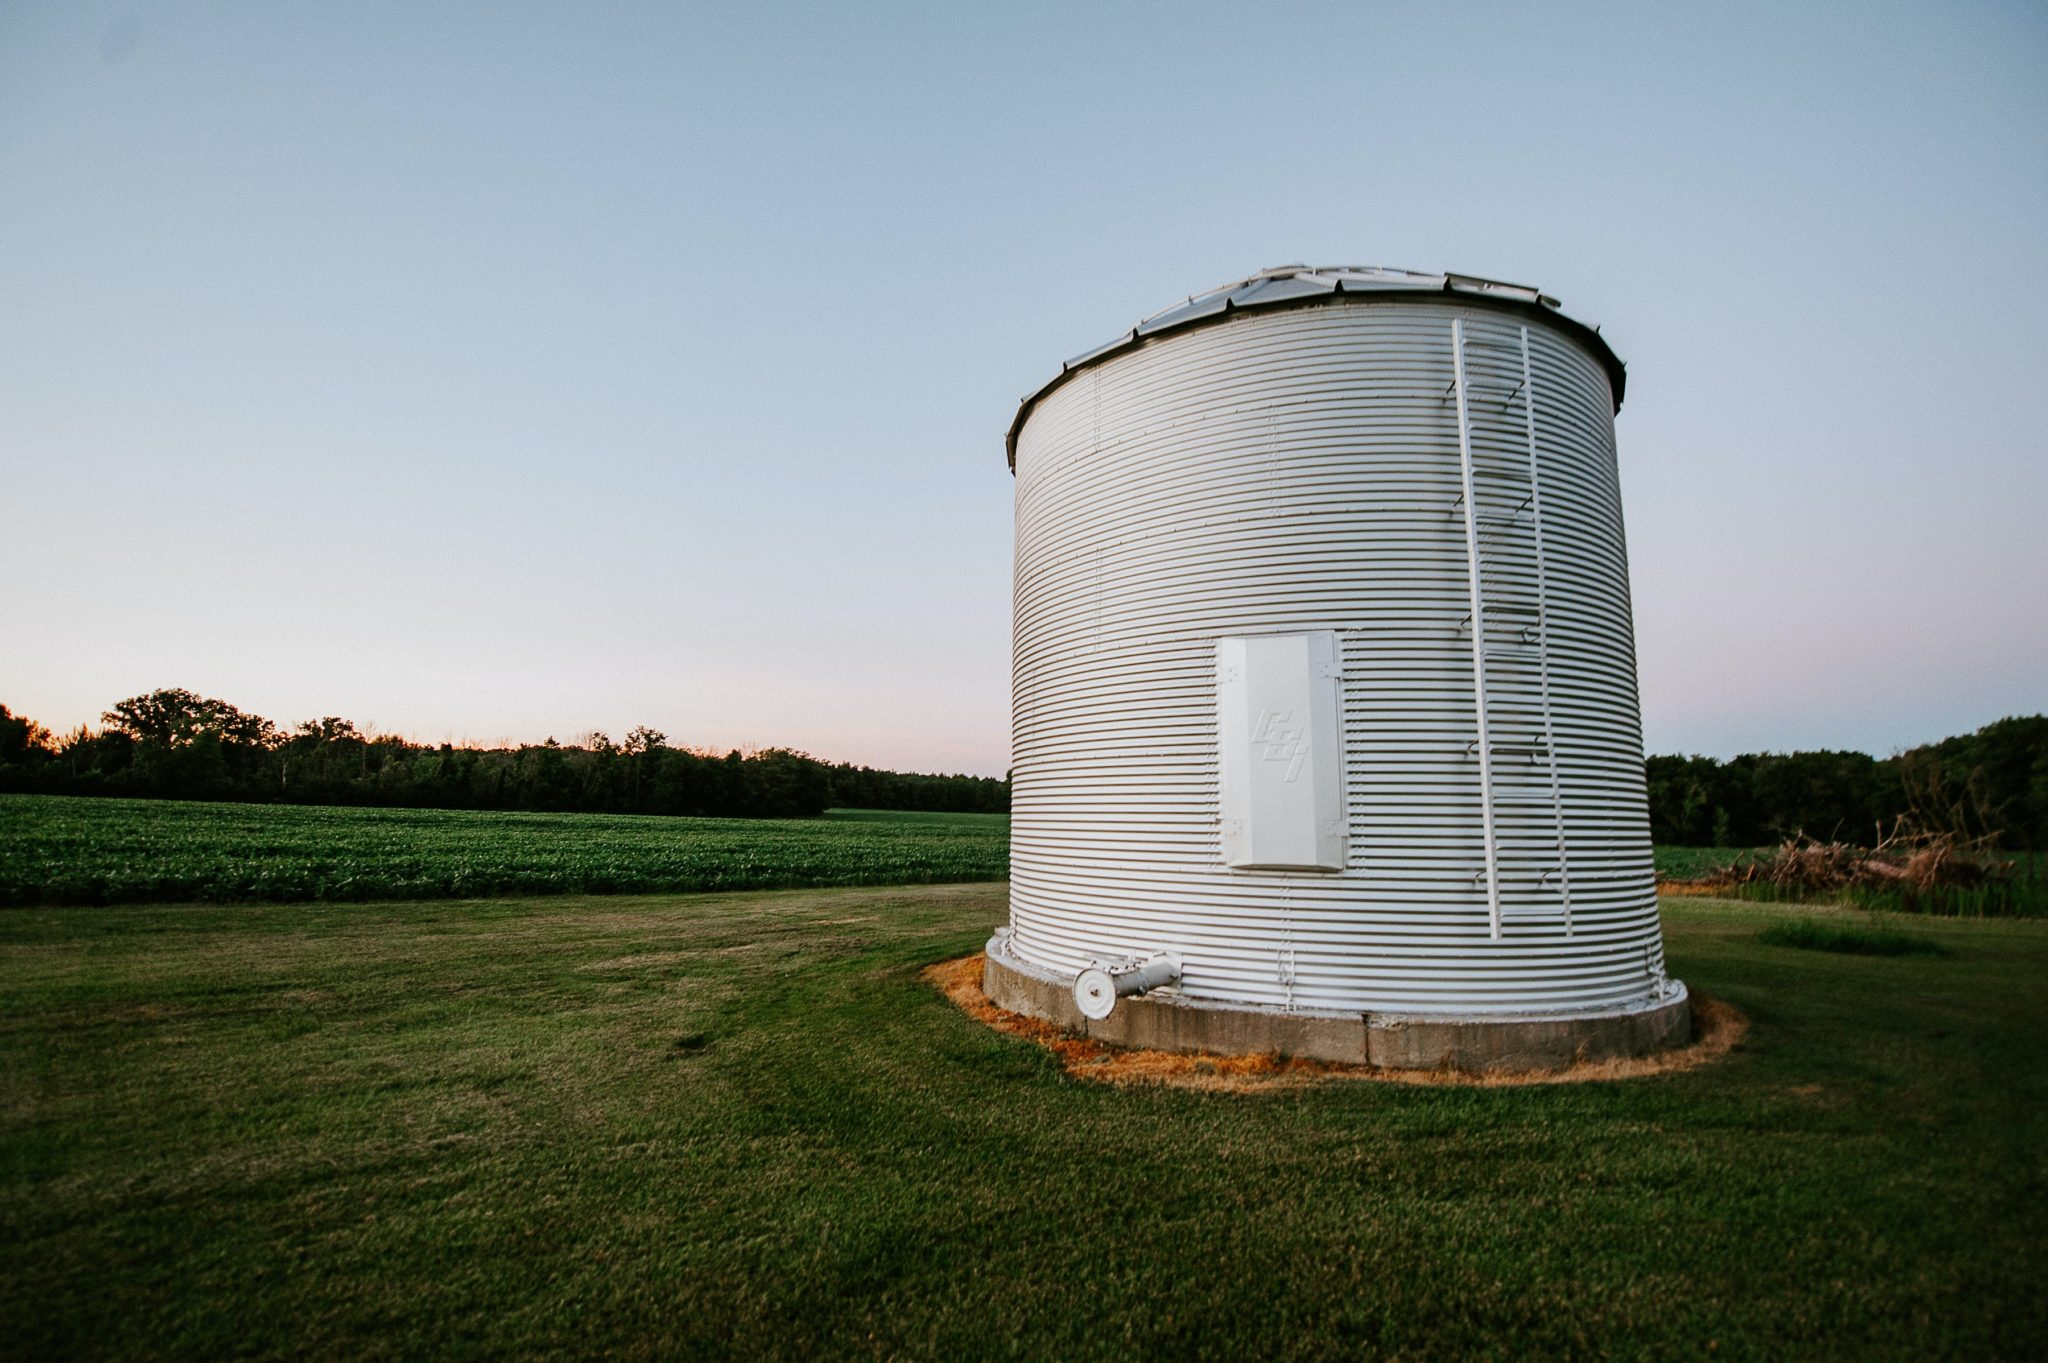 Grain Silo in middle of a field